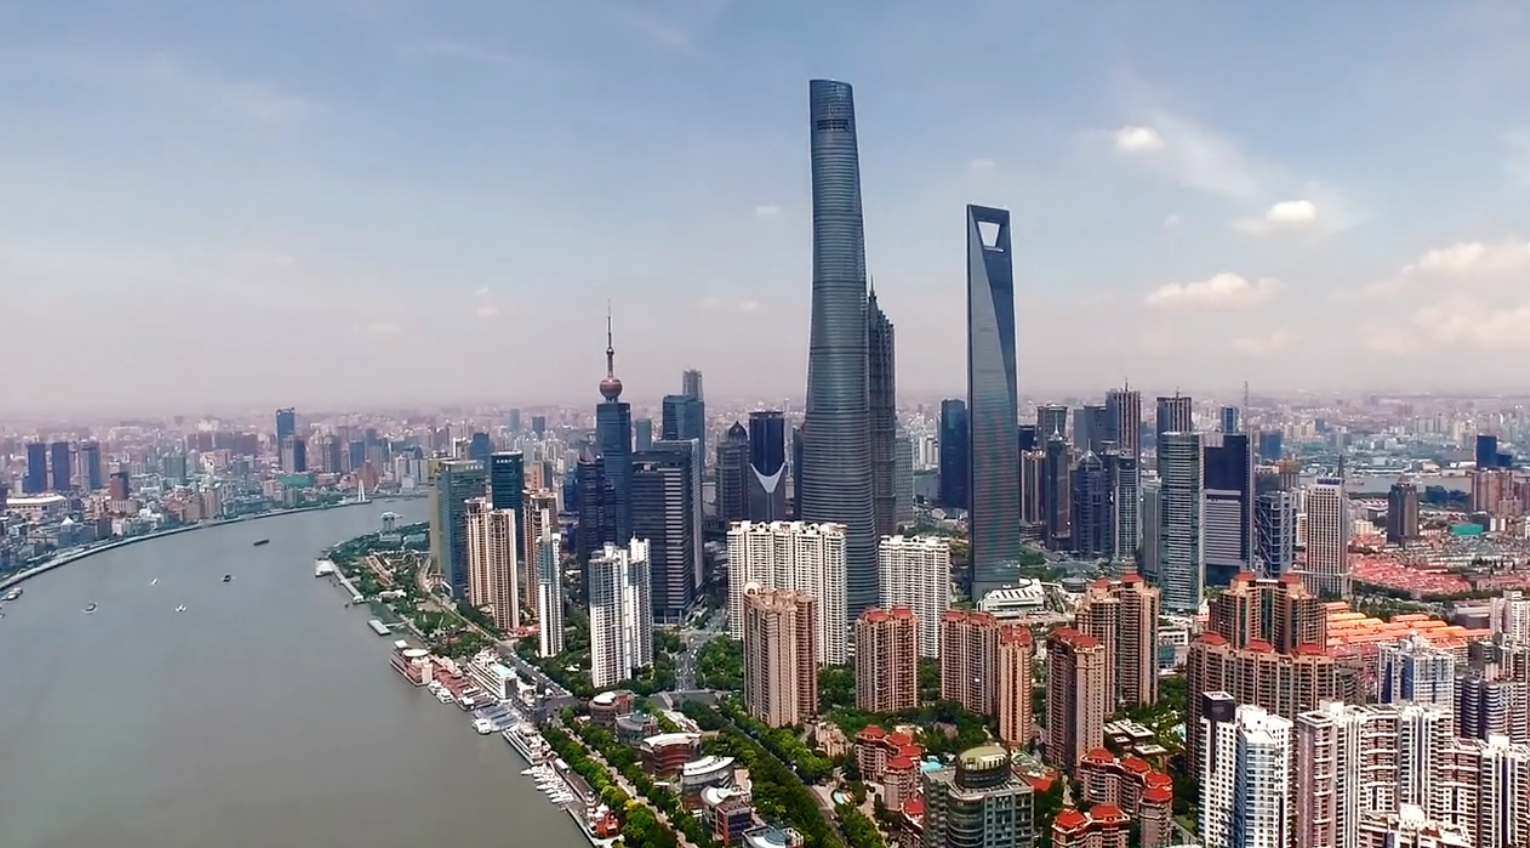 Shanghai Tower - Tallest Building in the World - Beautiful Global